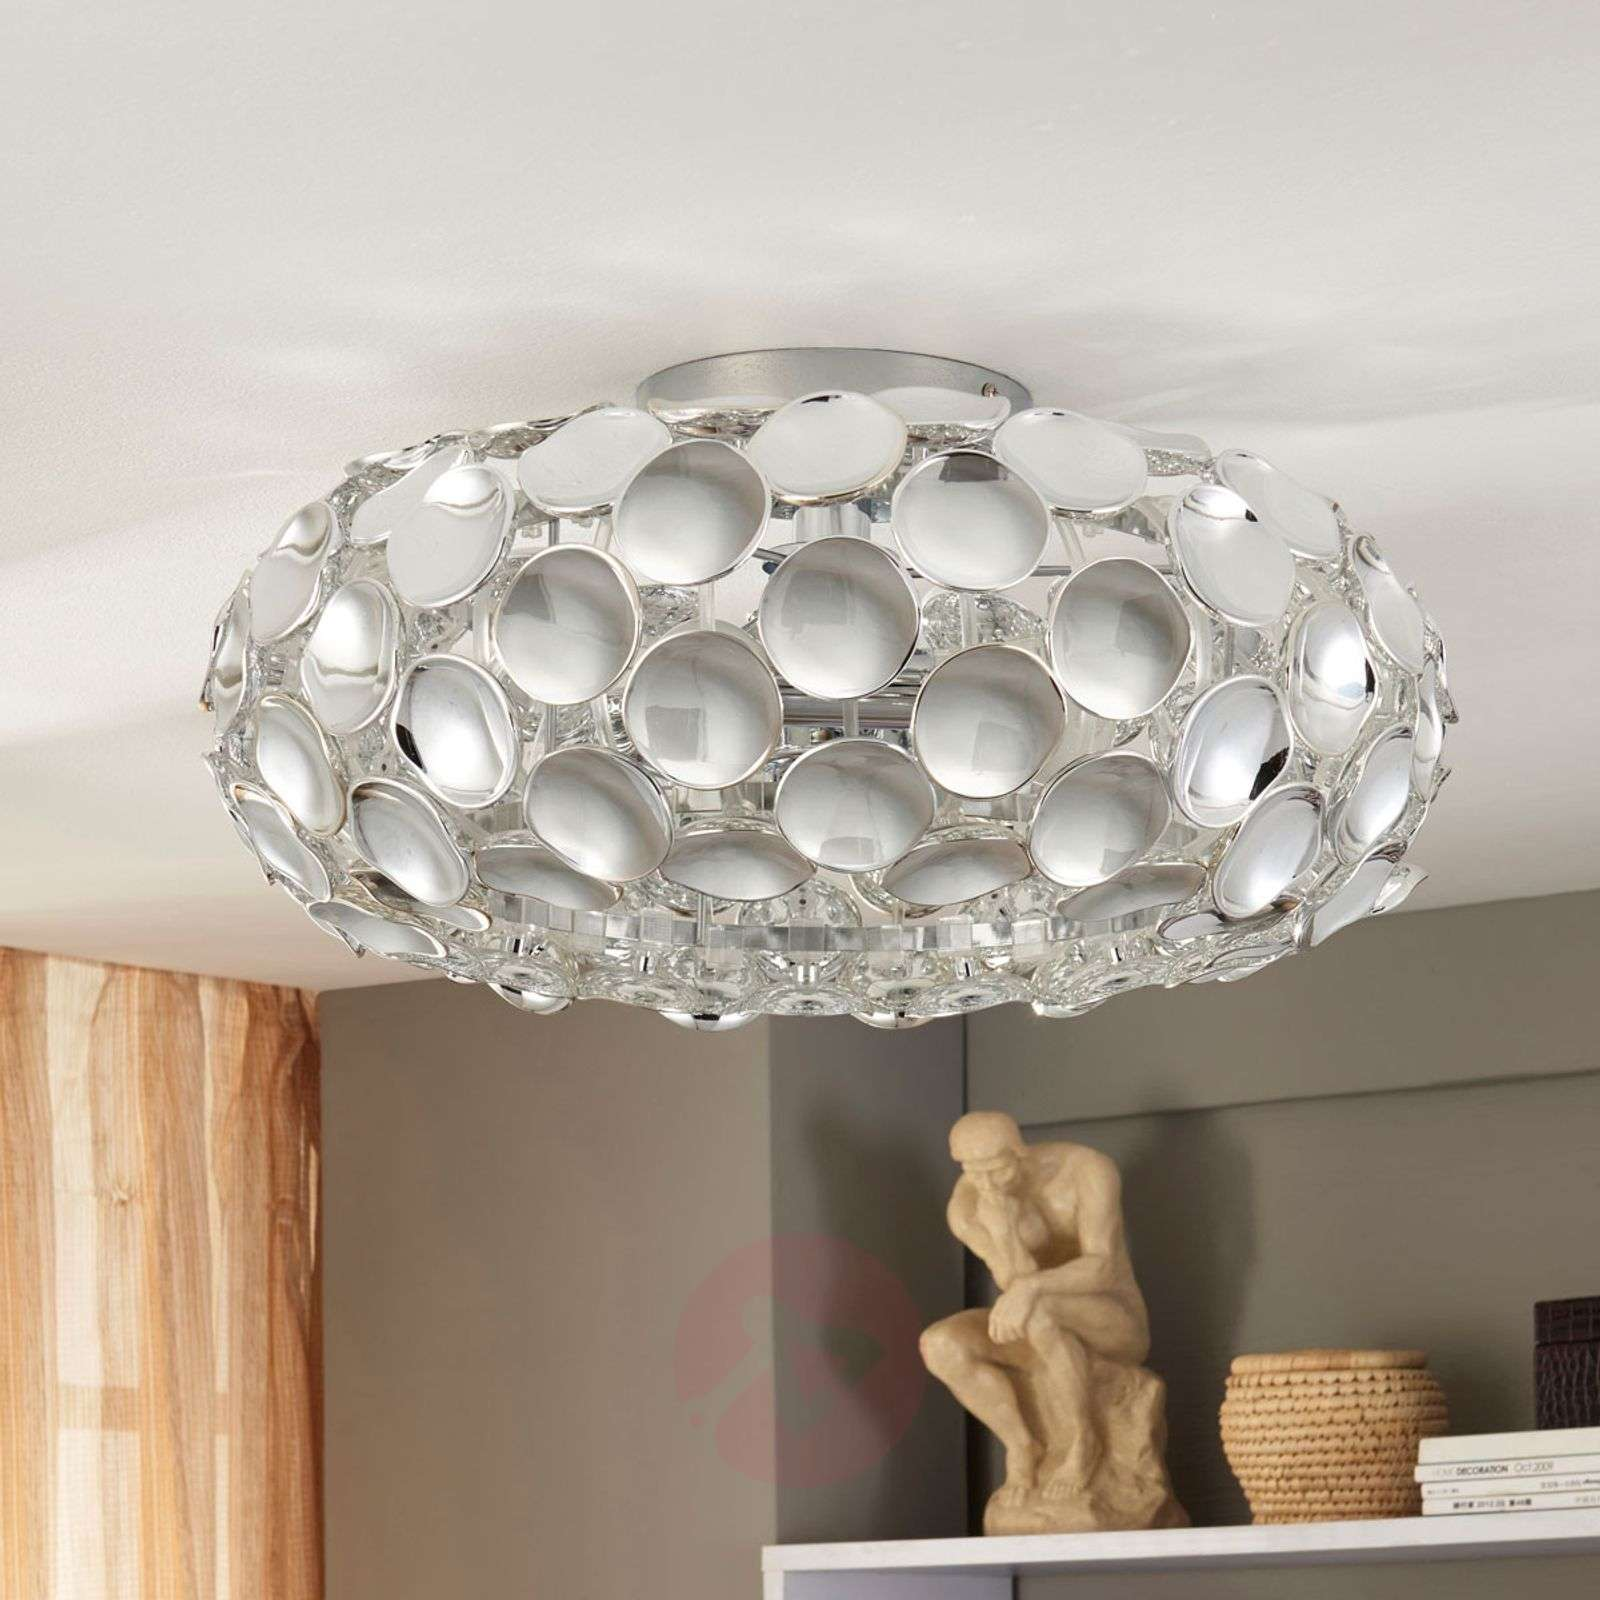 Glossy chrome ceiling lamp Reza-9621127-02